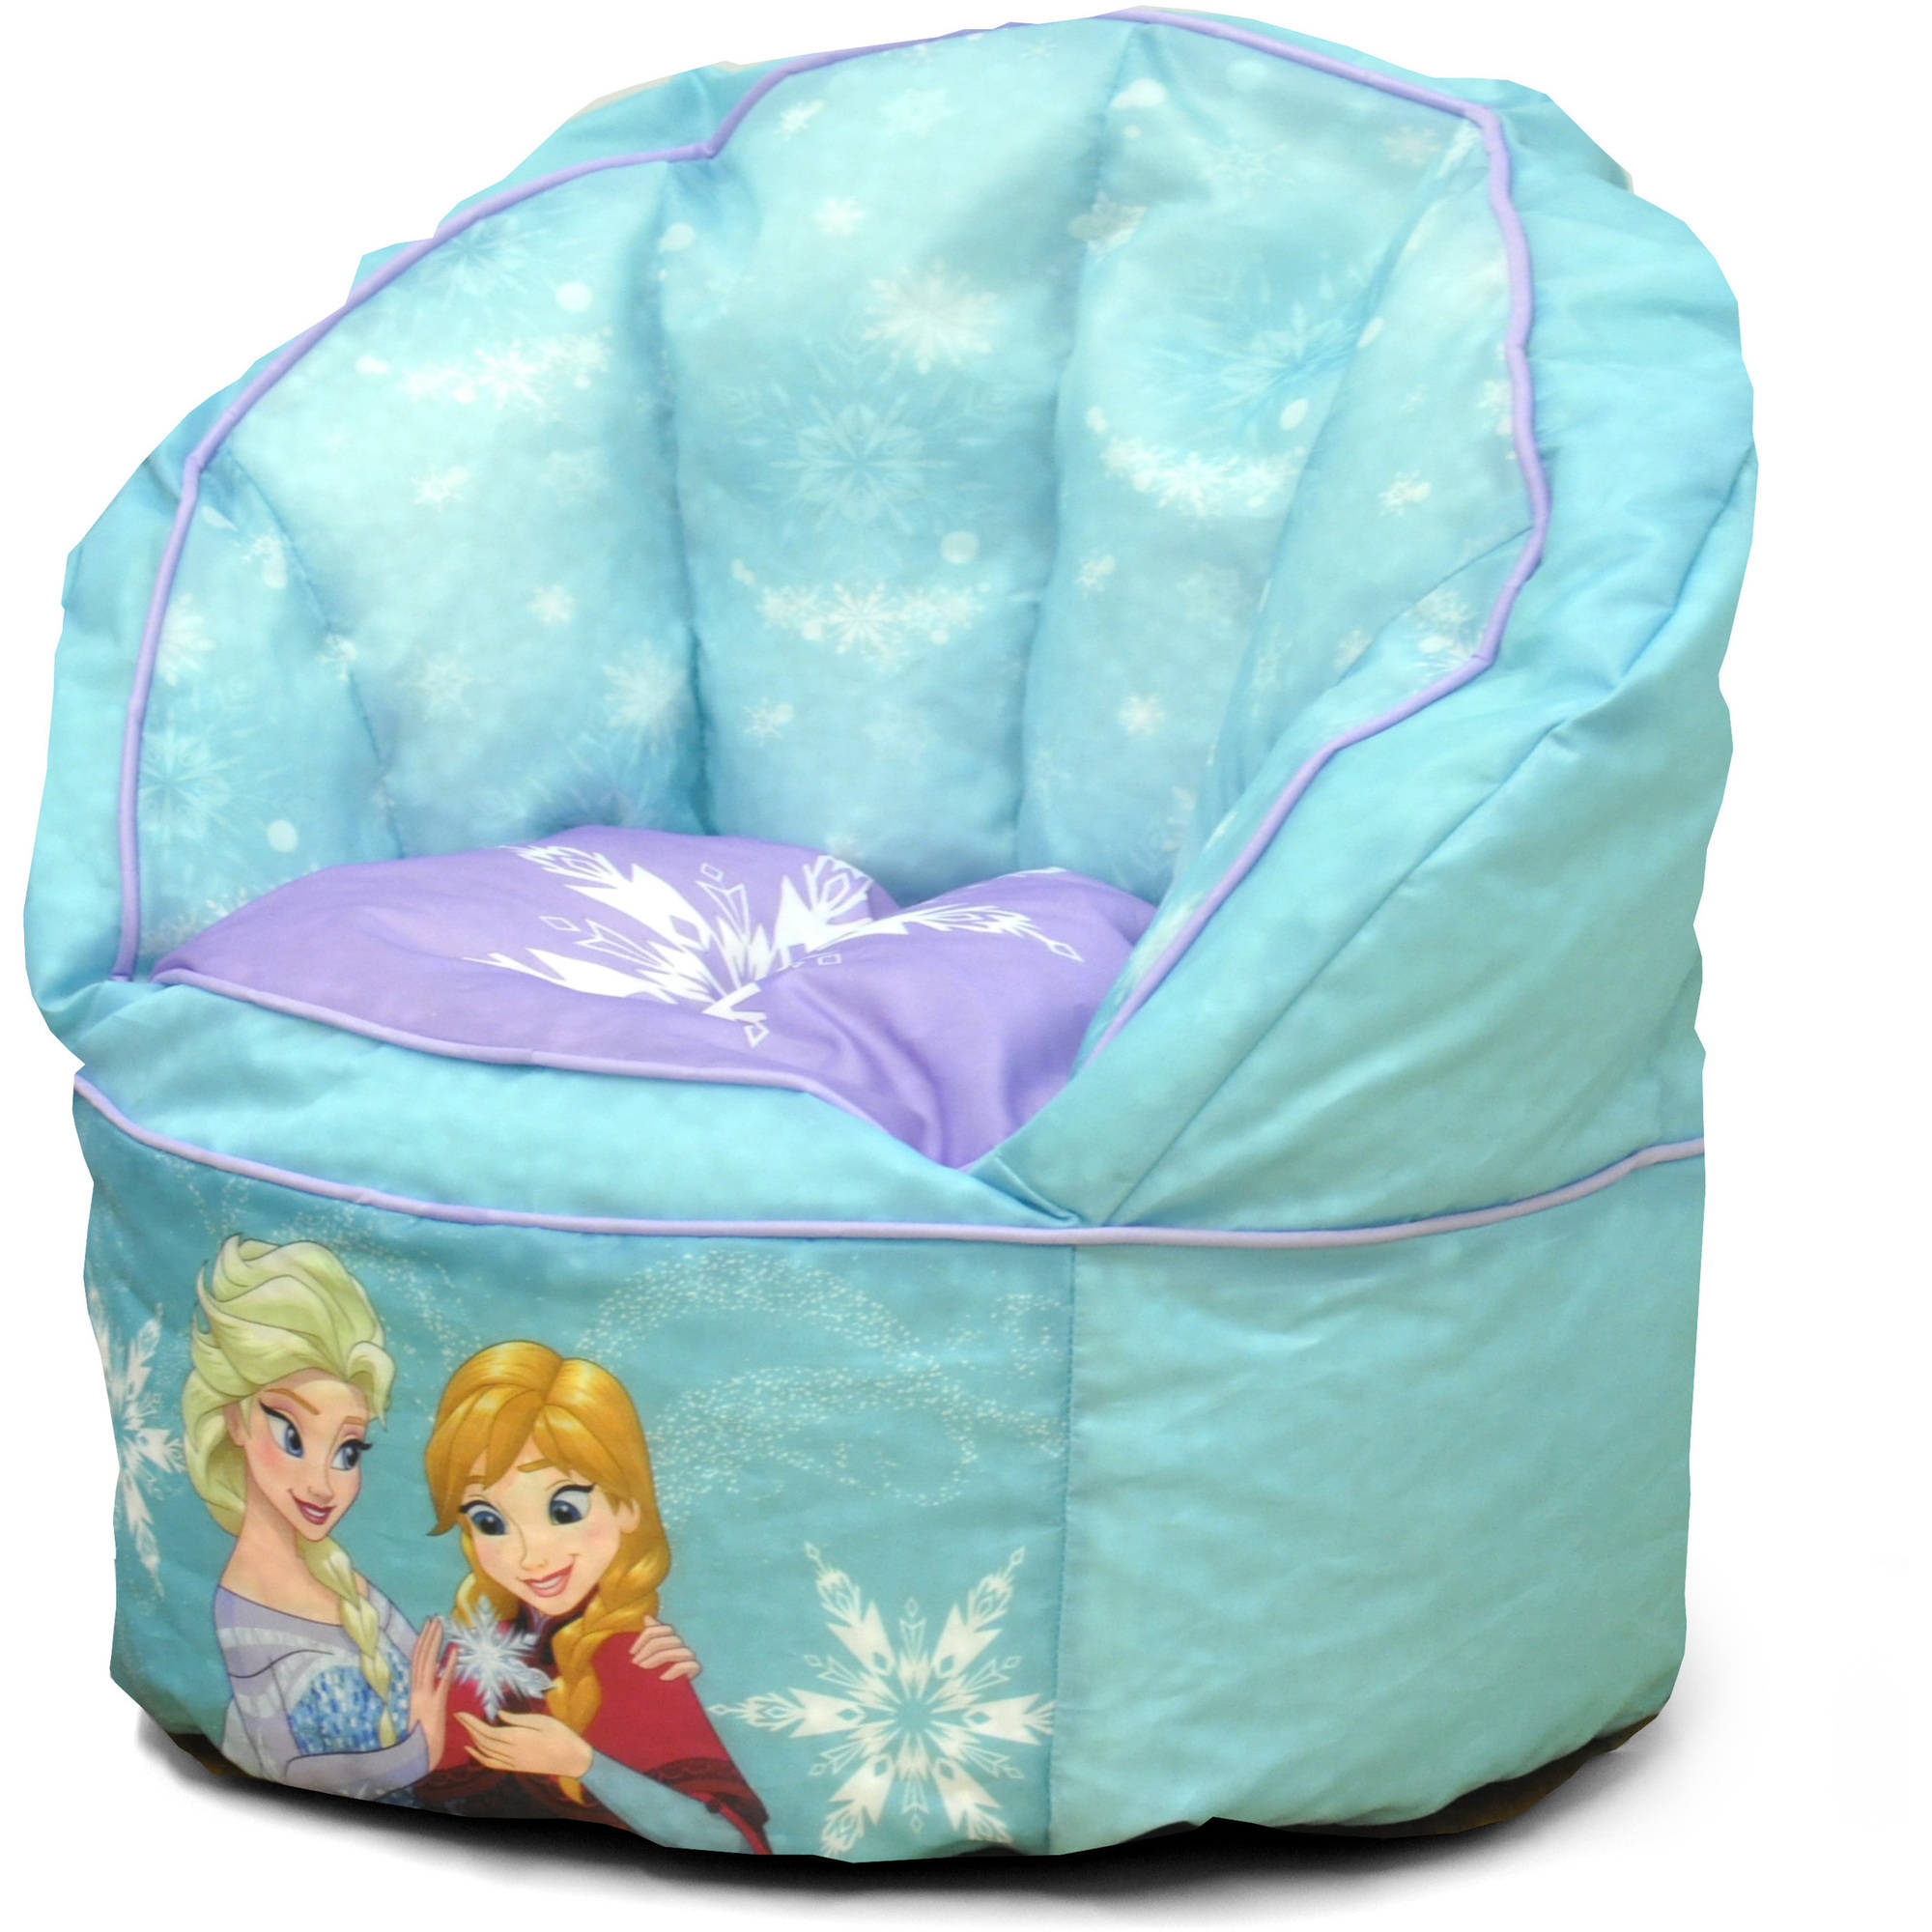 Disney Frozen Sofa Bean Bag Chair with Piping